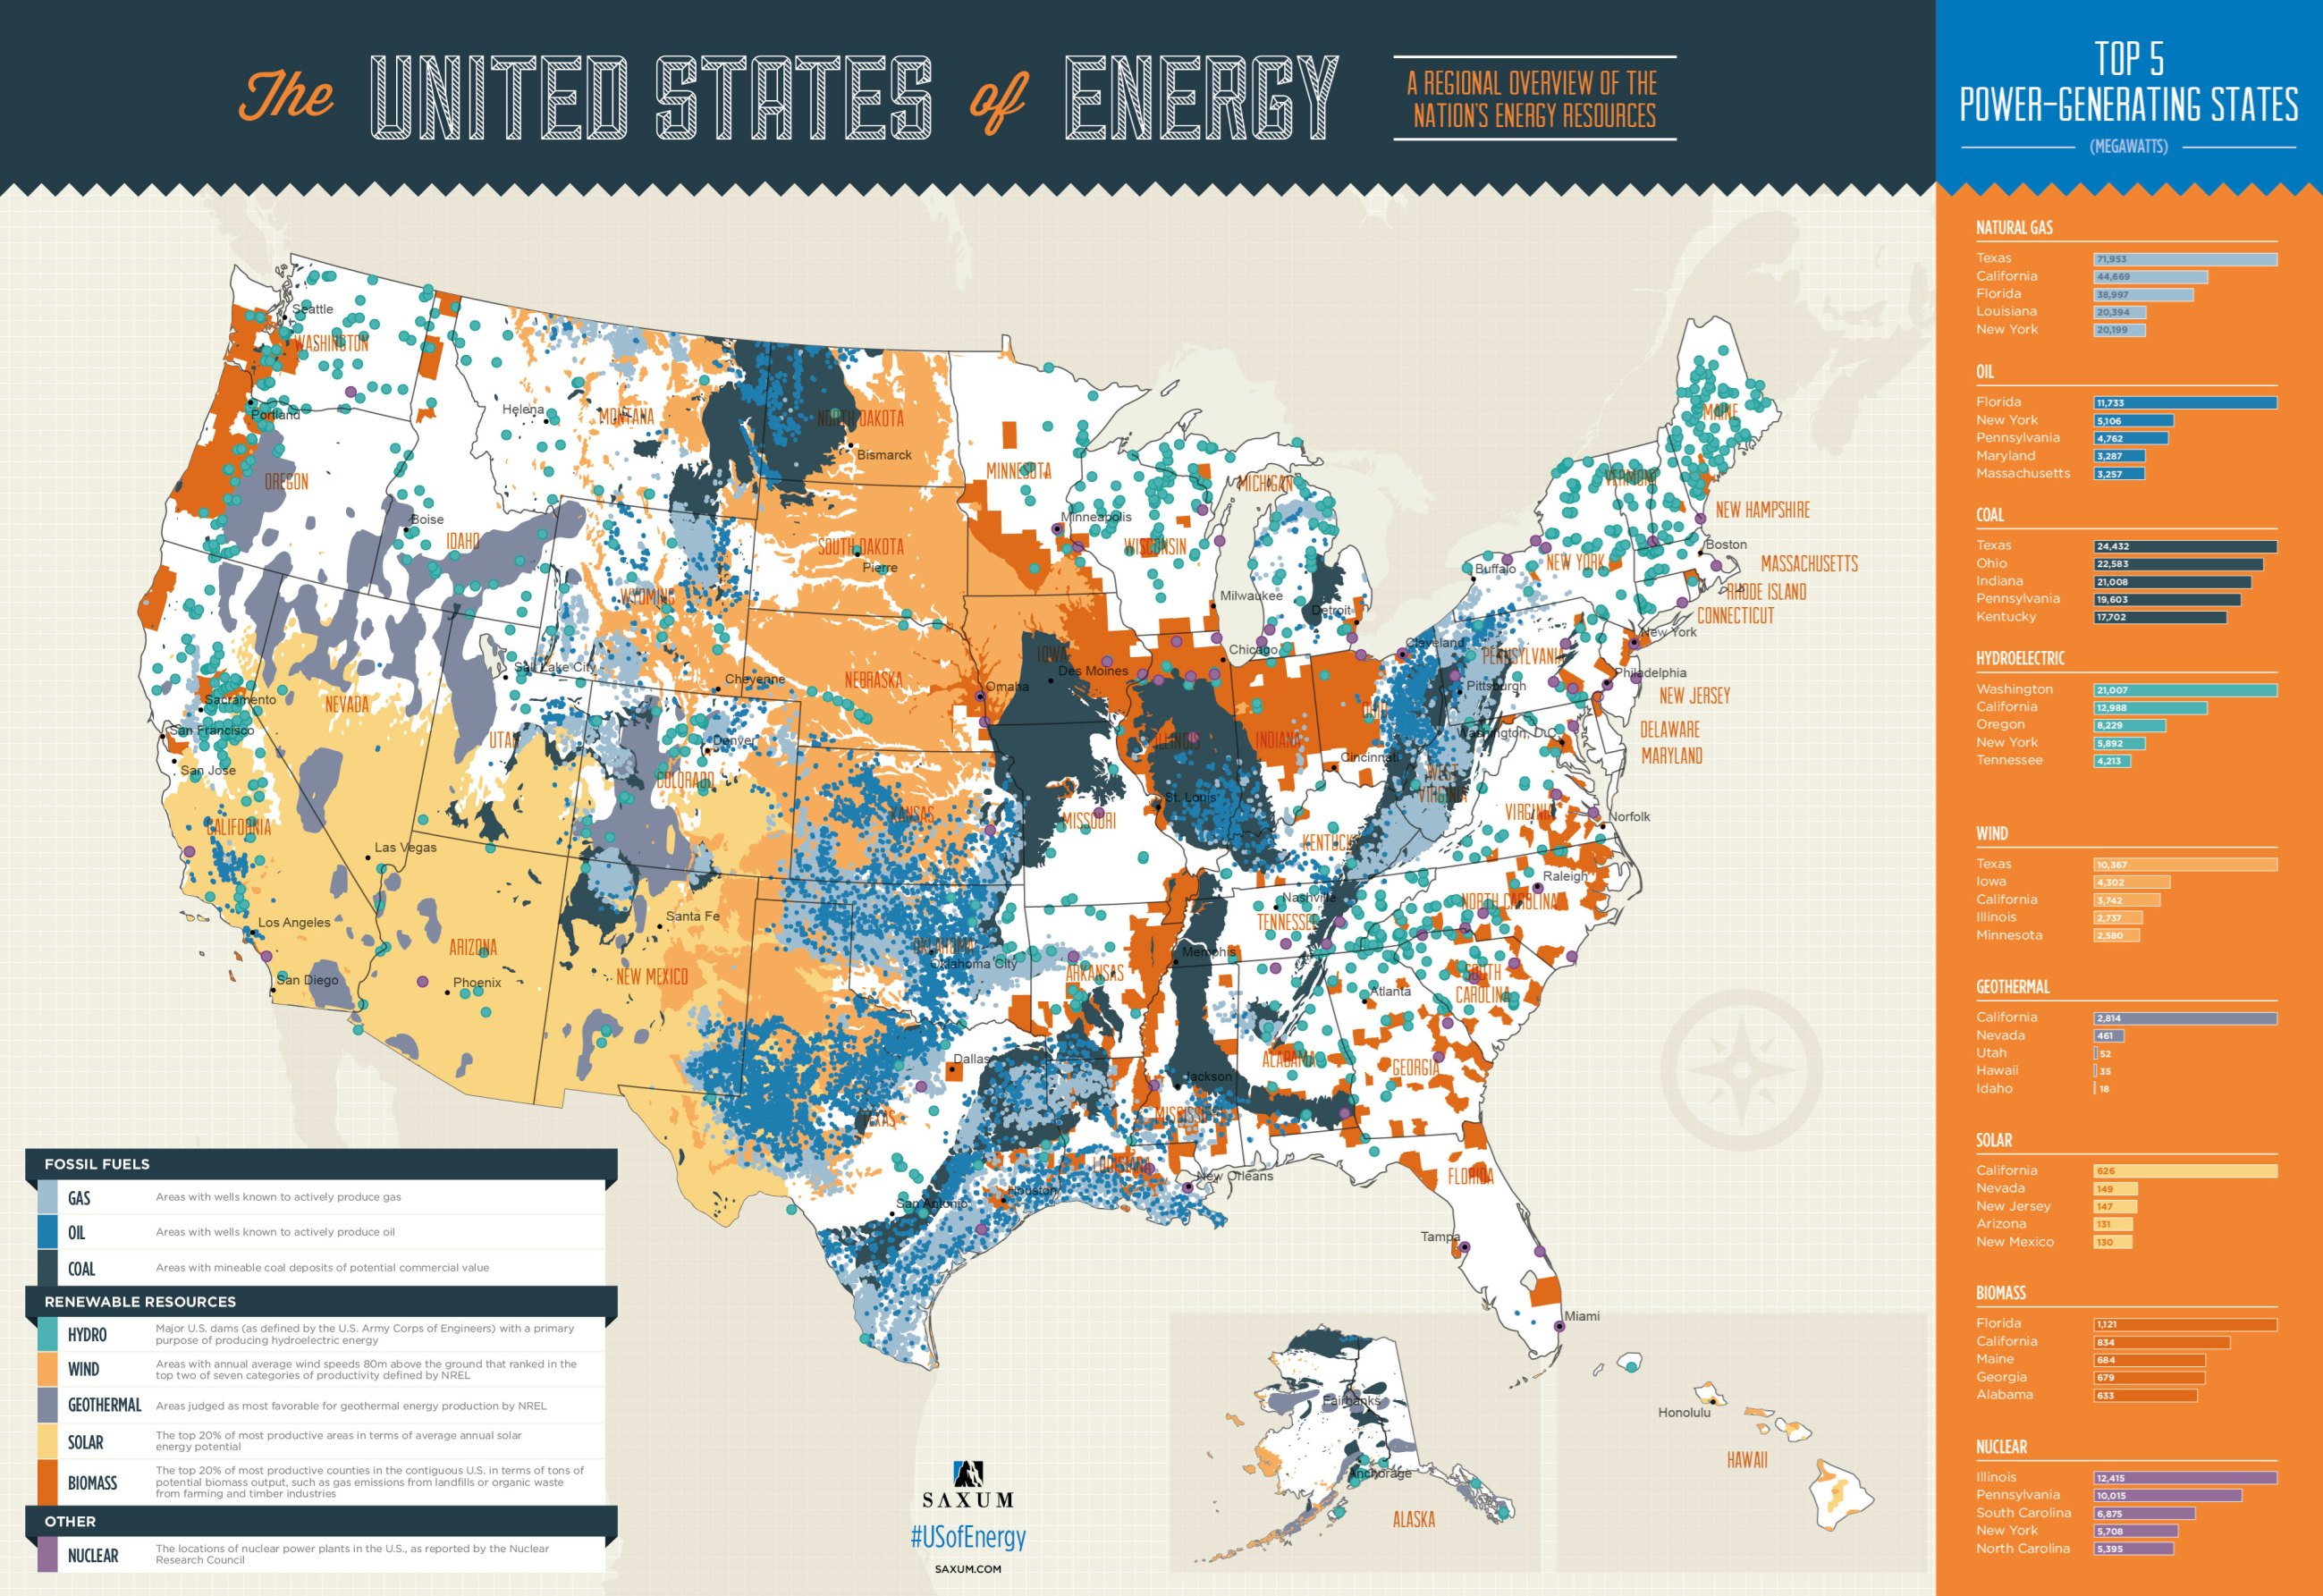 The United States of Energy